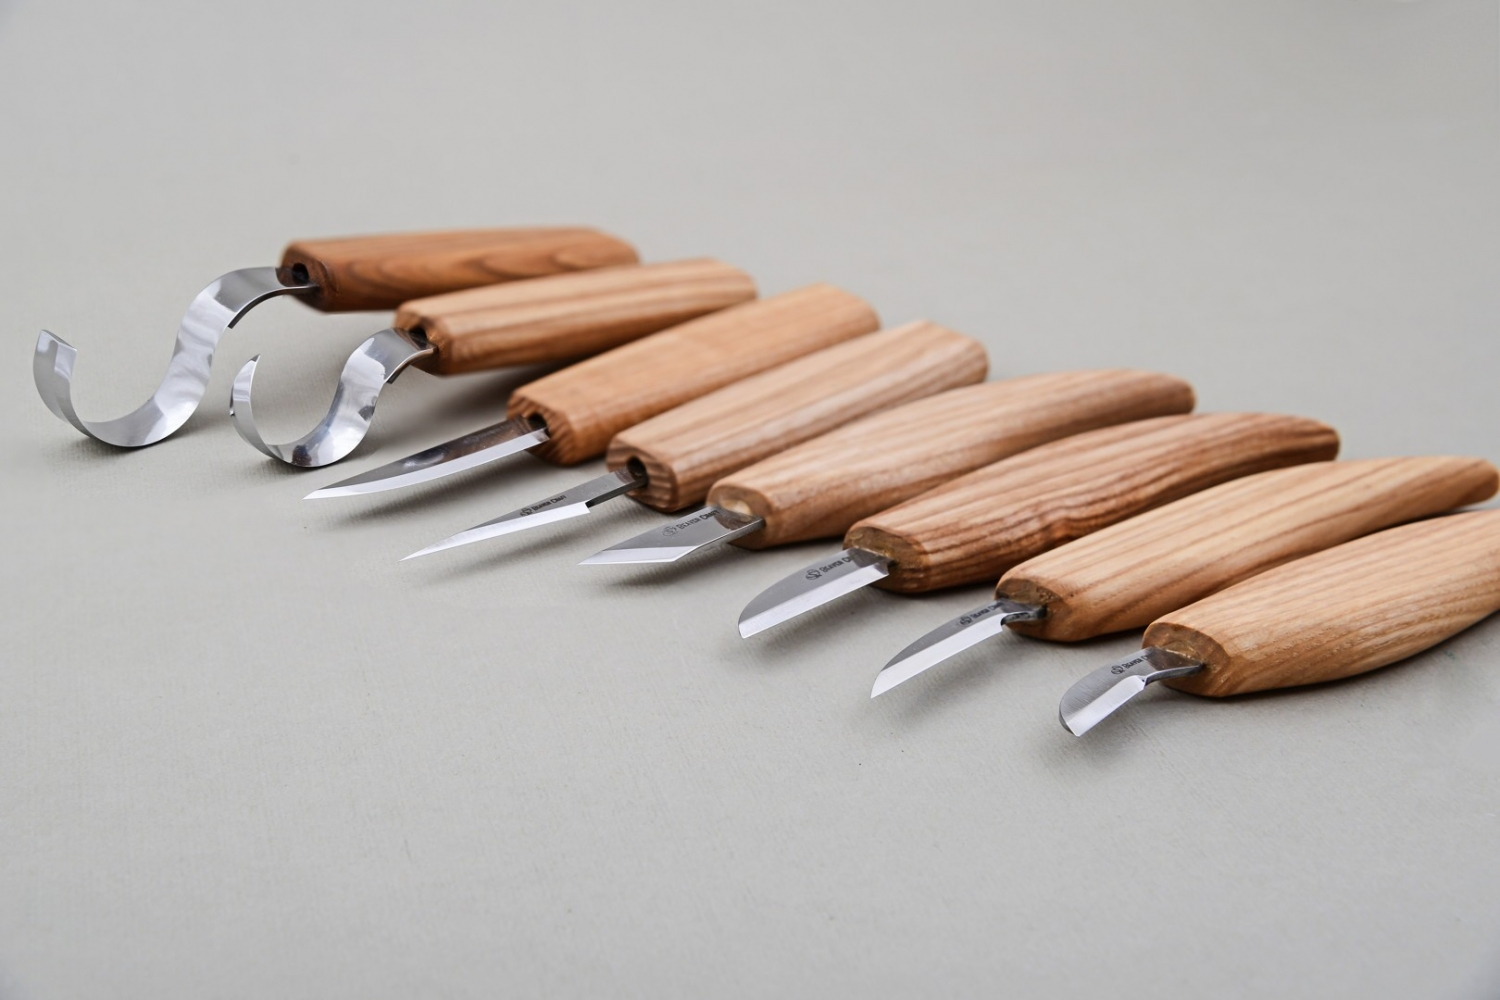 Beaver Craft Tools | Products